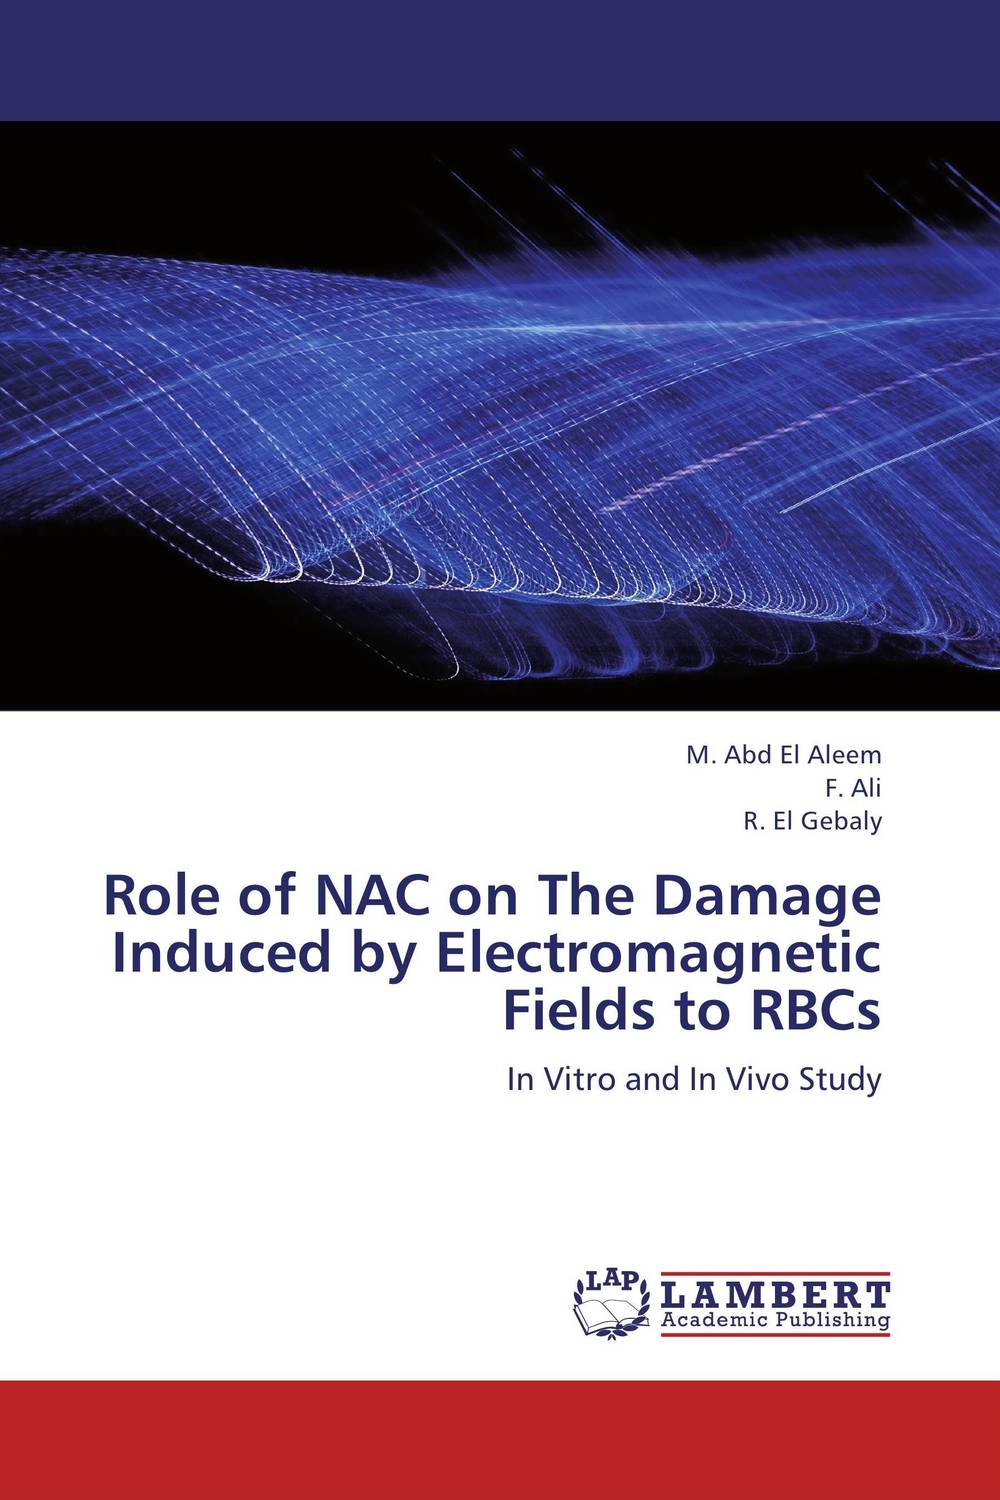 Role of NAC on The Damage Induced by Electromagnetic Fields to RBCs in situ detection of dna damage methods and protocols